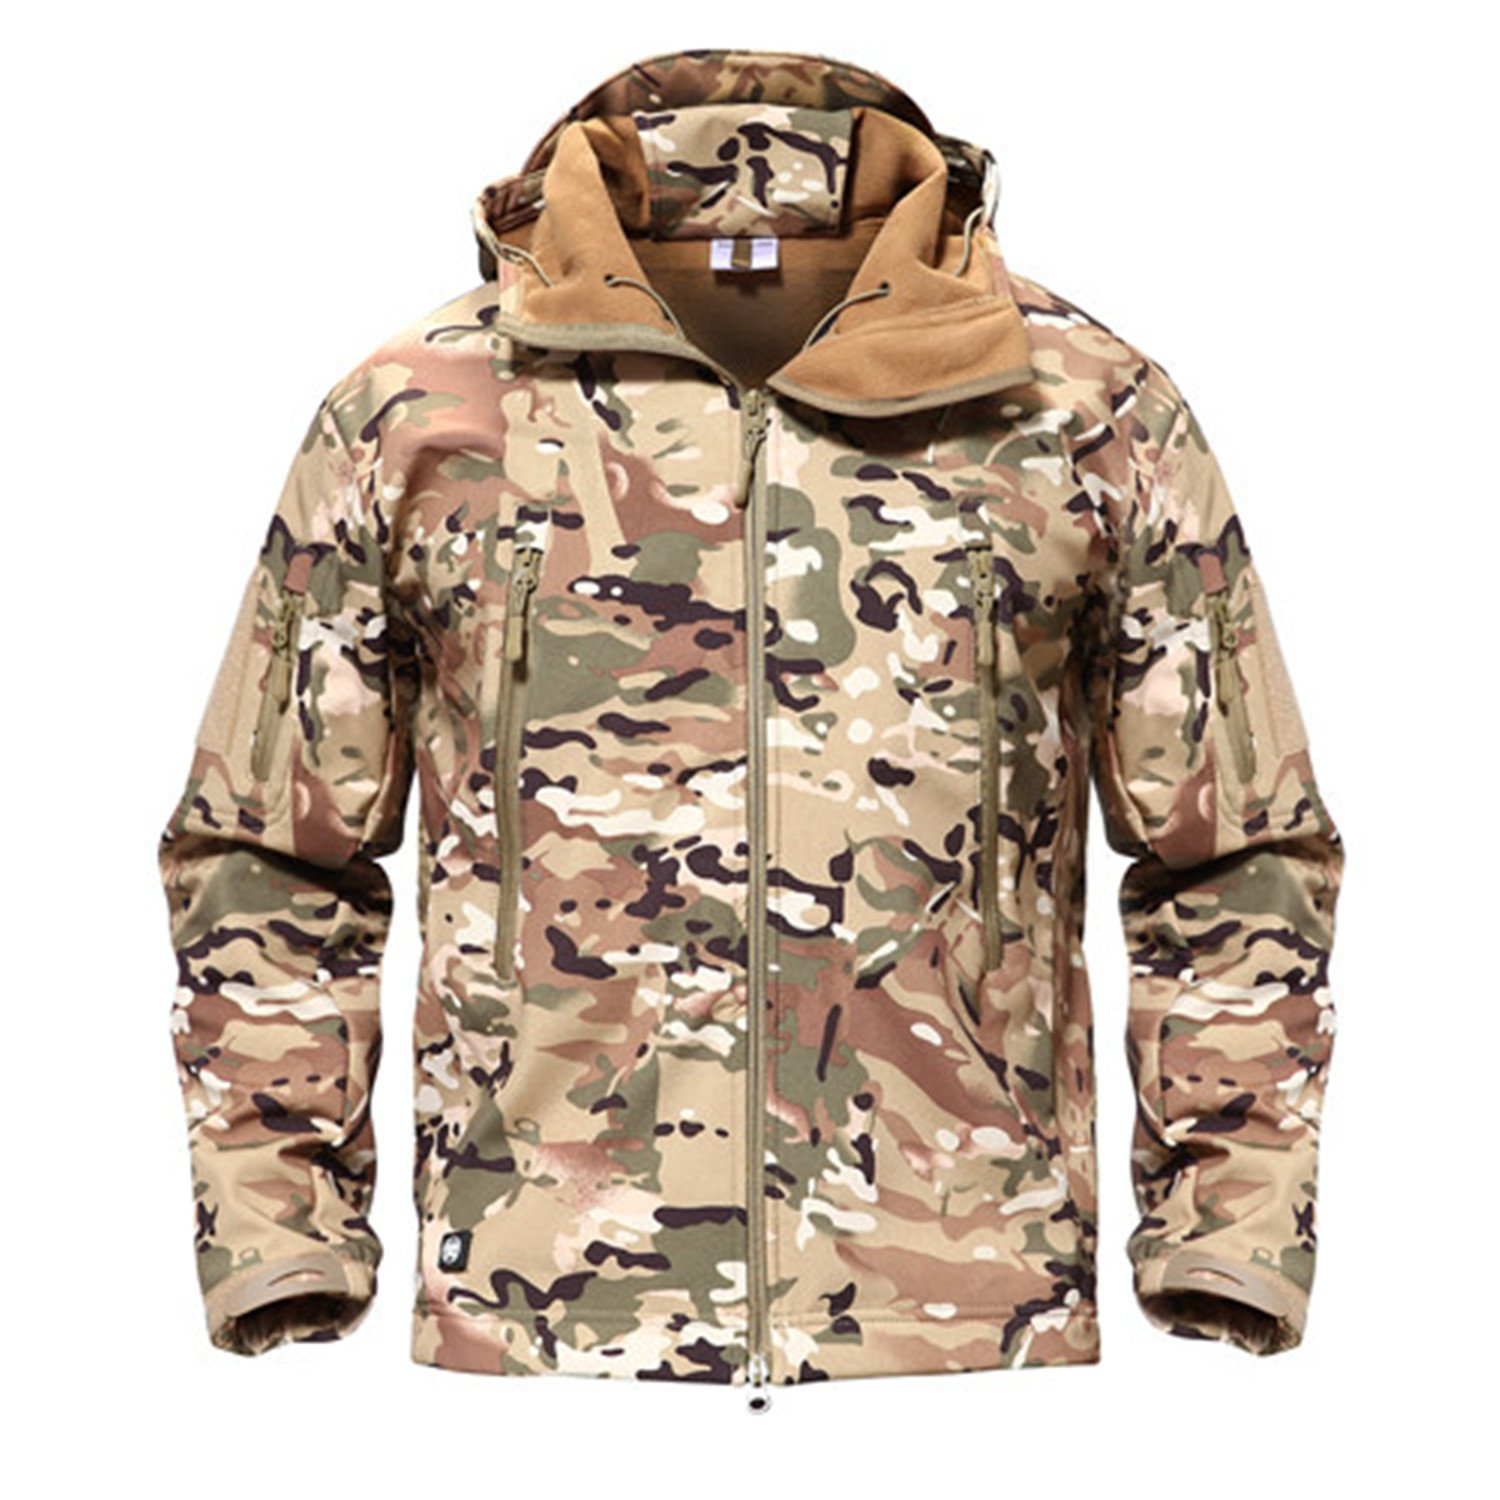 Meetloveyou Military Jacket Men Softshell Waterpoof Camo Clothes Tactical Camouflage Army Hoody Jacket Male Winter Coat CP XS by Meetloveyou Coat (Image #1)